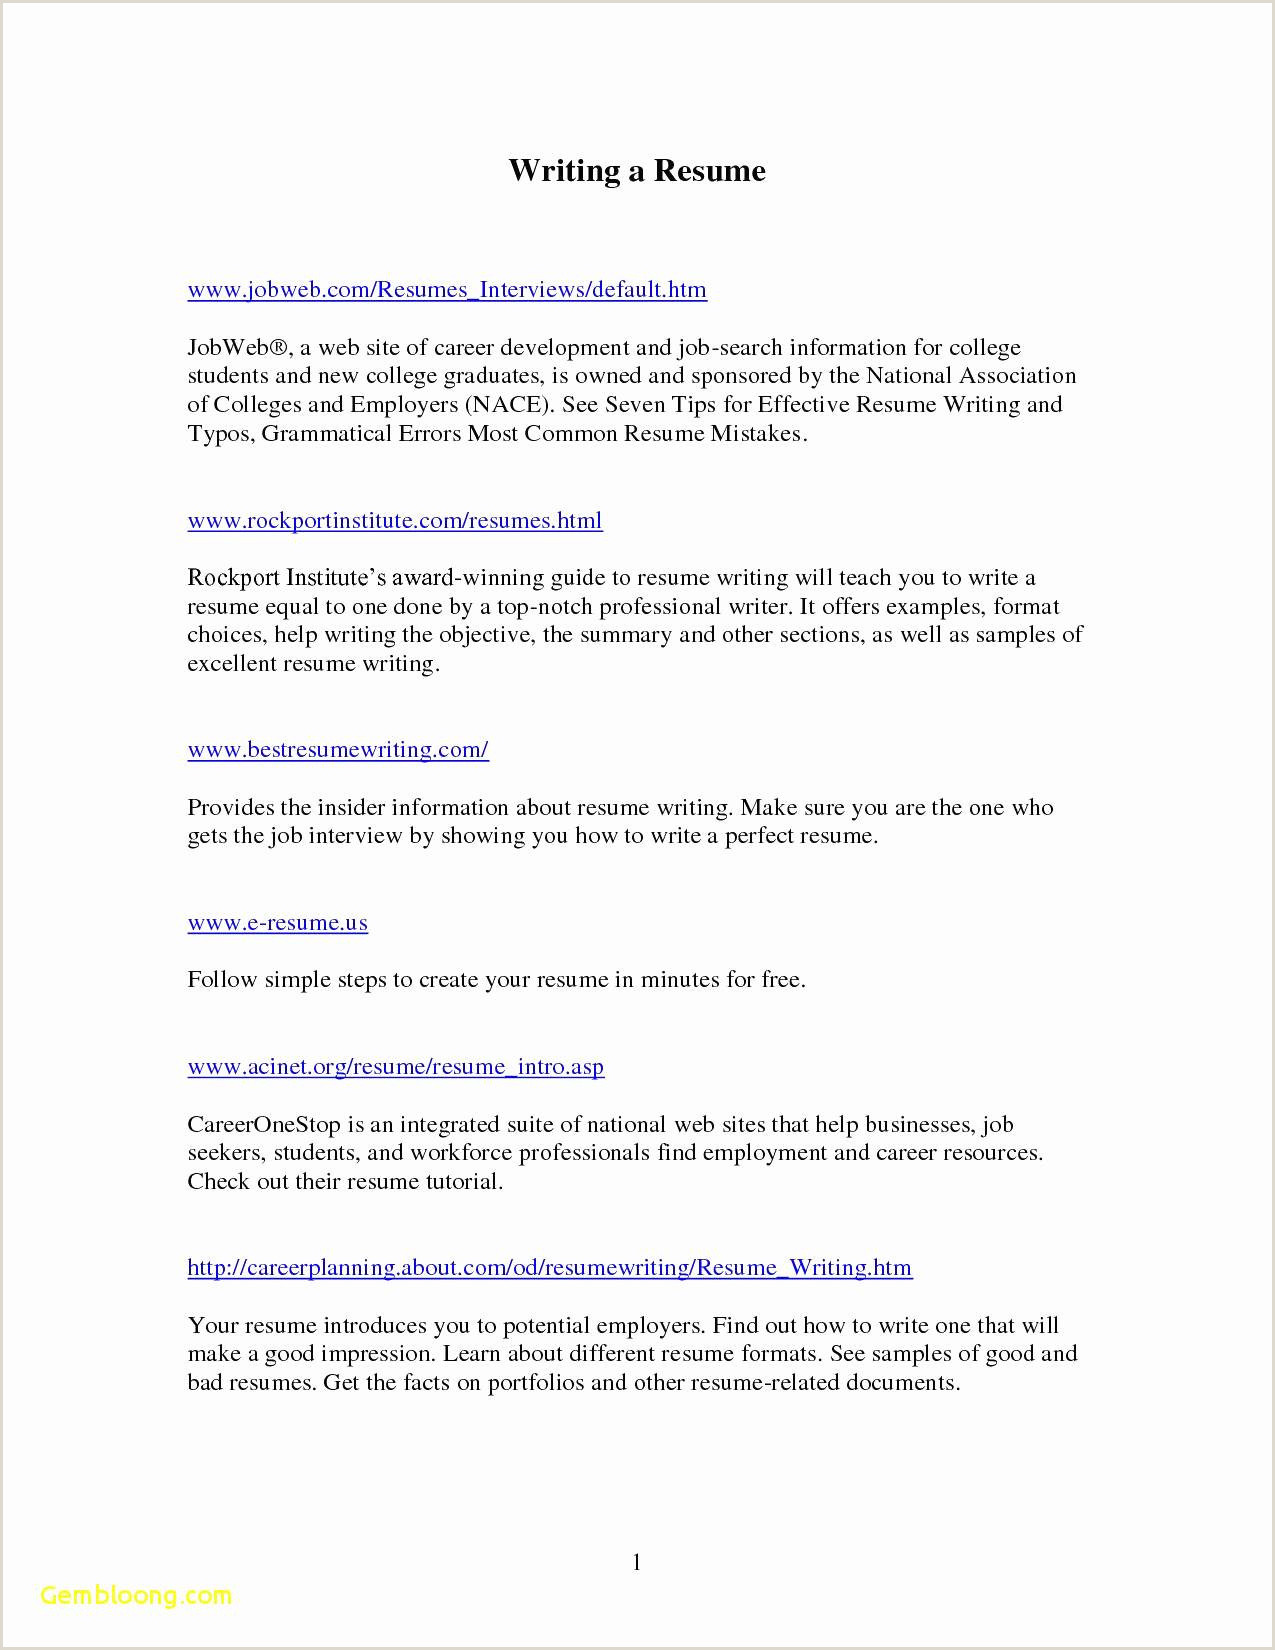 Resume format for Job Simple 46 Simple Site Internet Cv Worldindoorlacrosse